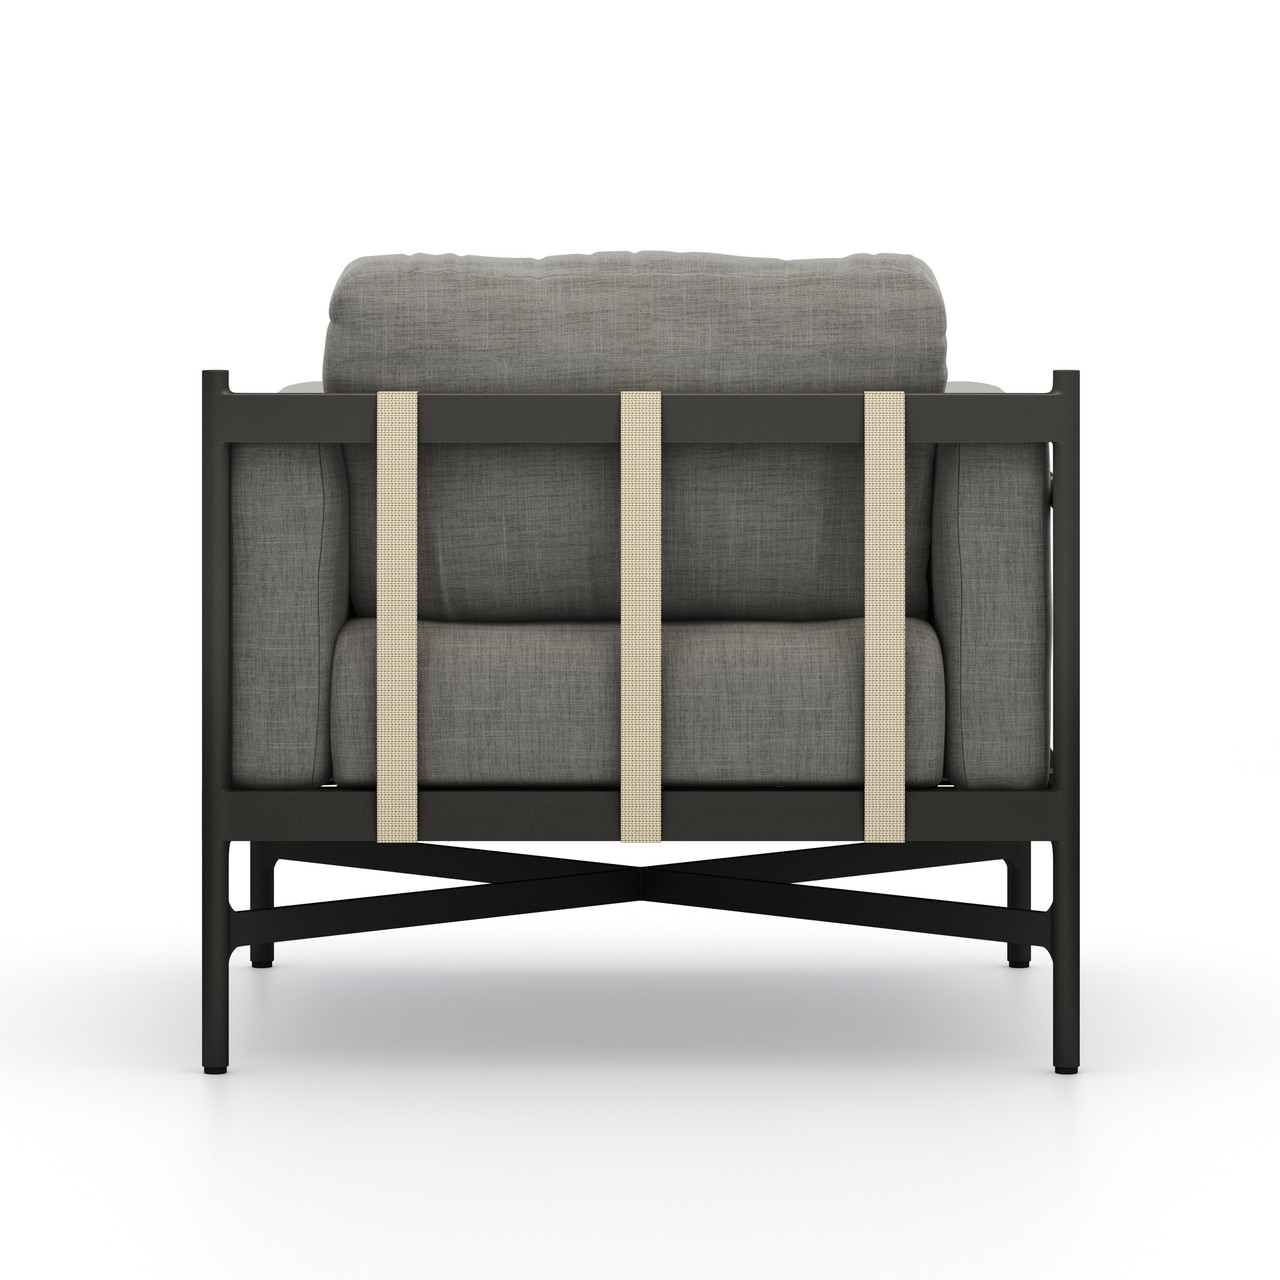 Hearst Outdoor Chair